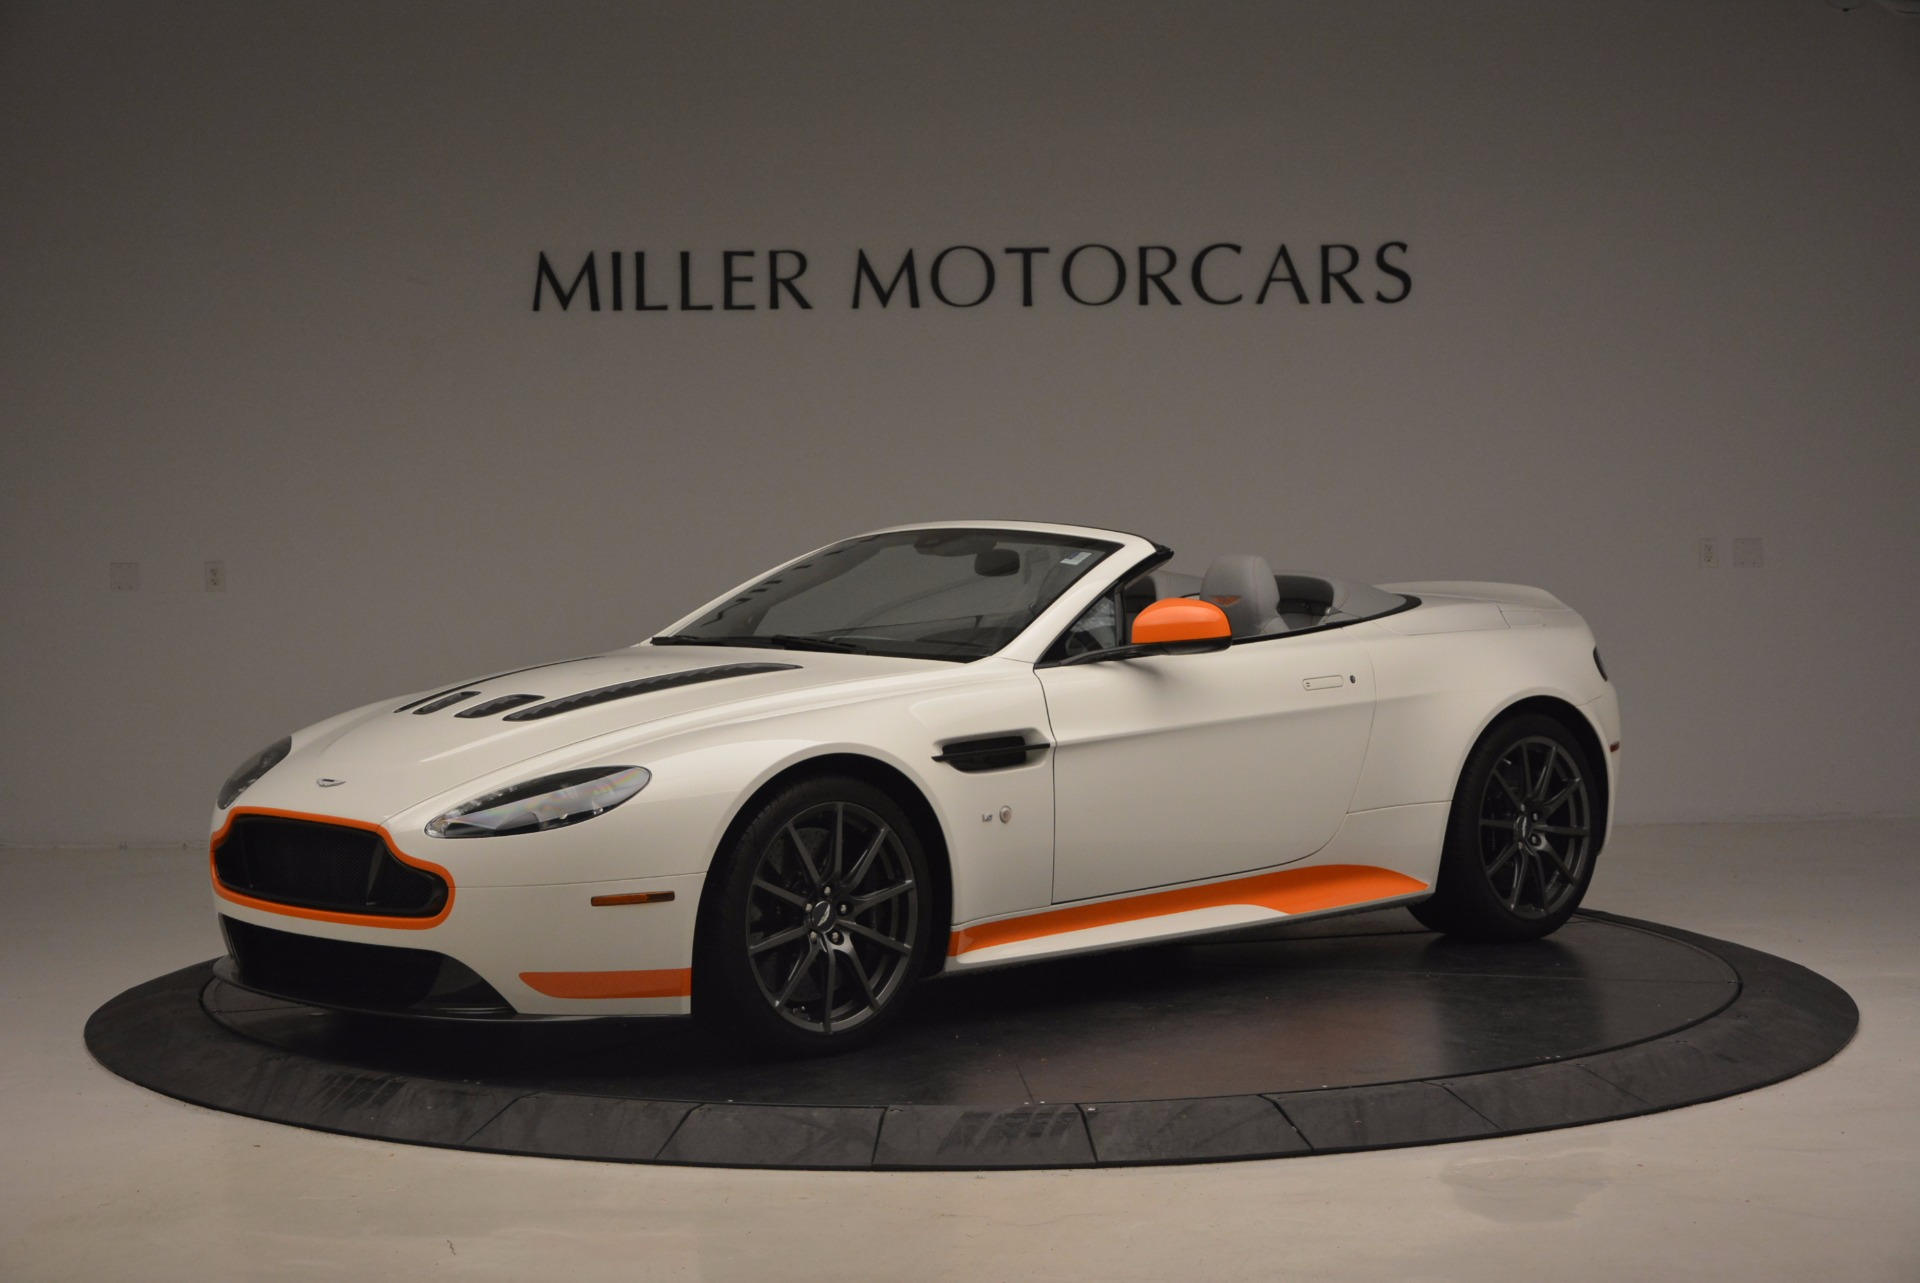 Used 2017 Aston Martin V12 Vantage S Convertible for sale Sold at Bentley Greenwich in Greenwich CT 06830 1